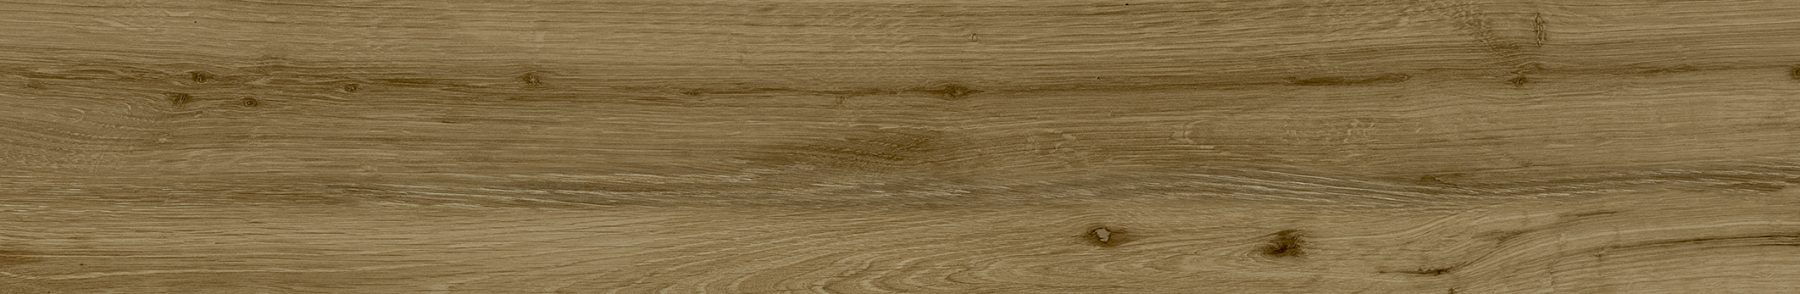 Porcelanosa Nobu Roble Tile 29.4 x 180 cm